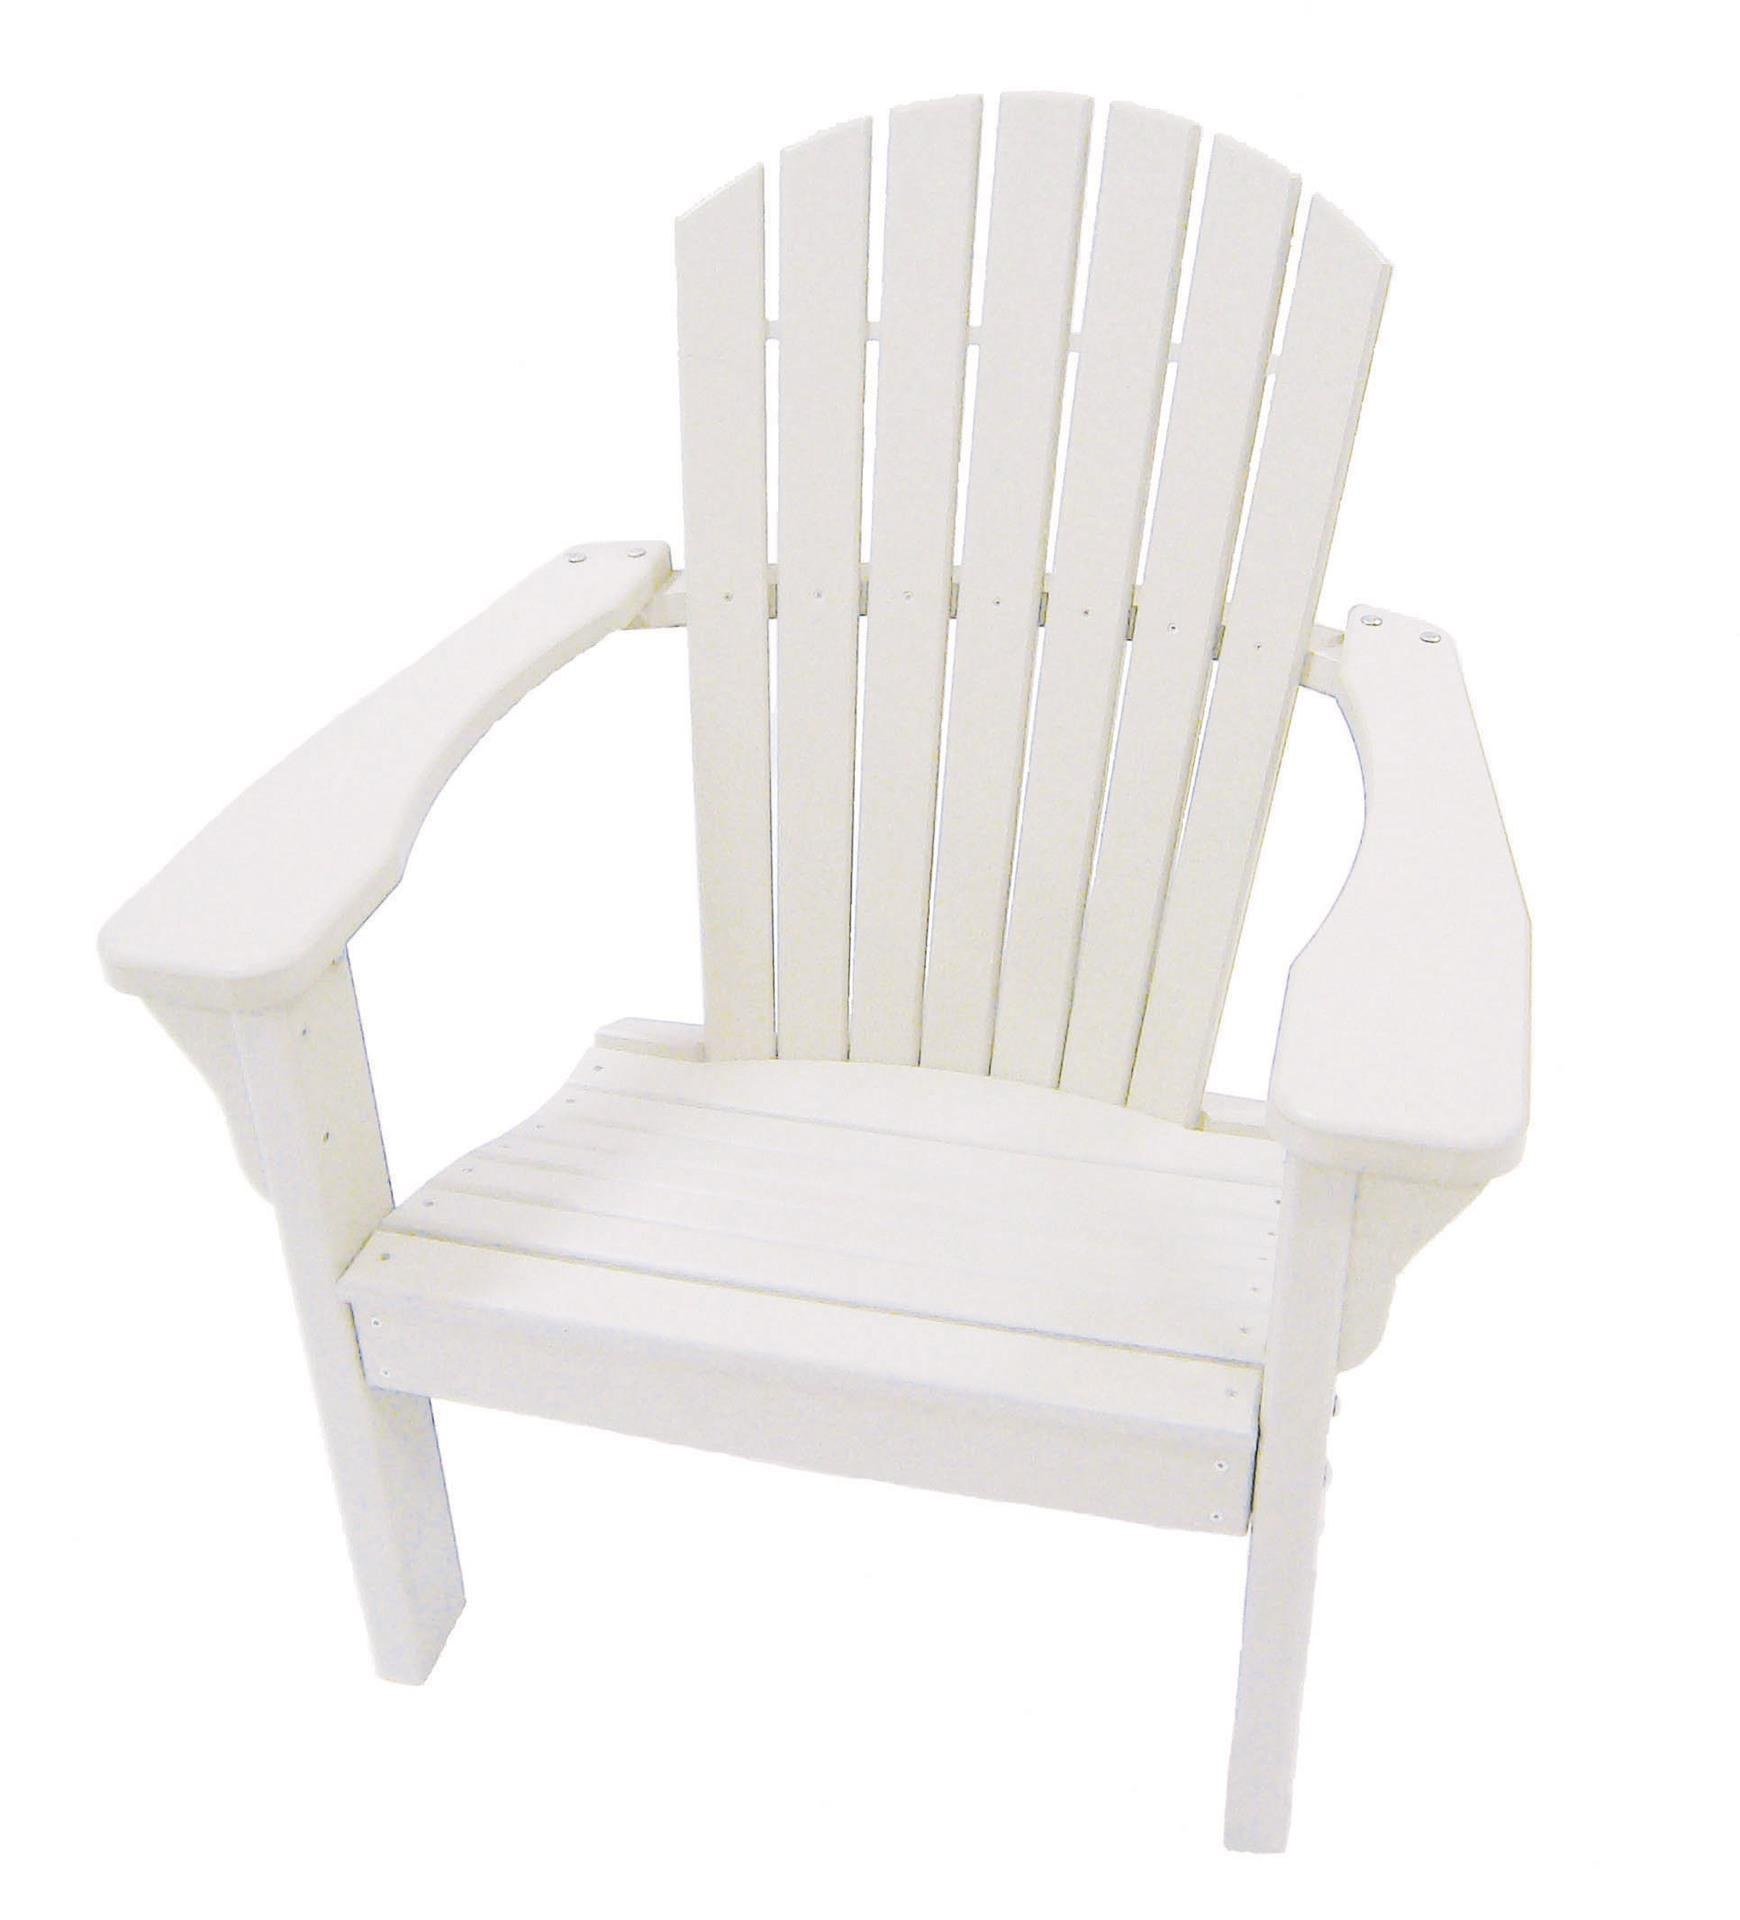 Recycled Poly Lumber Furniture Adirondack Chair